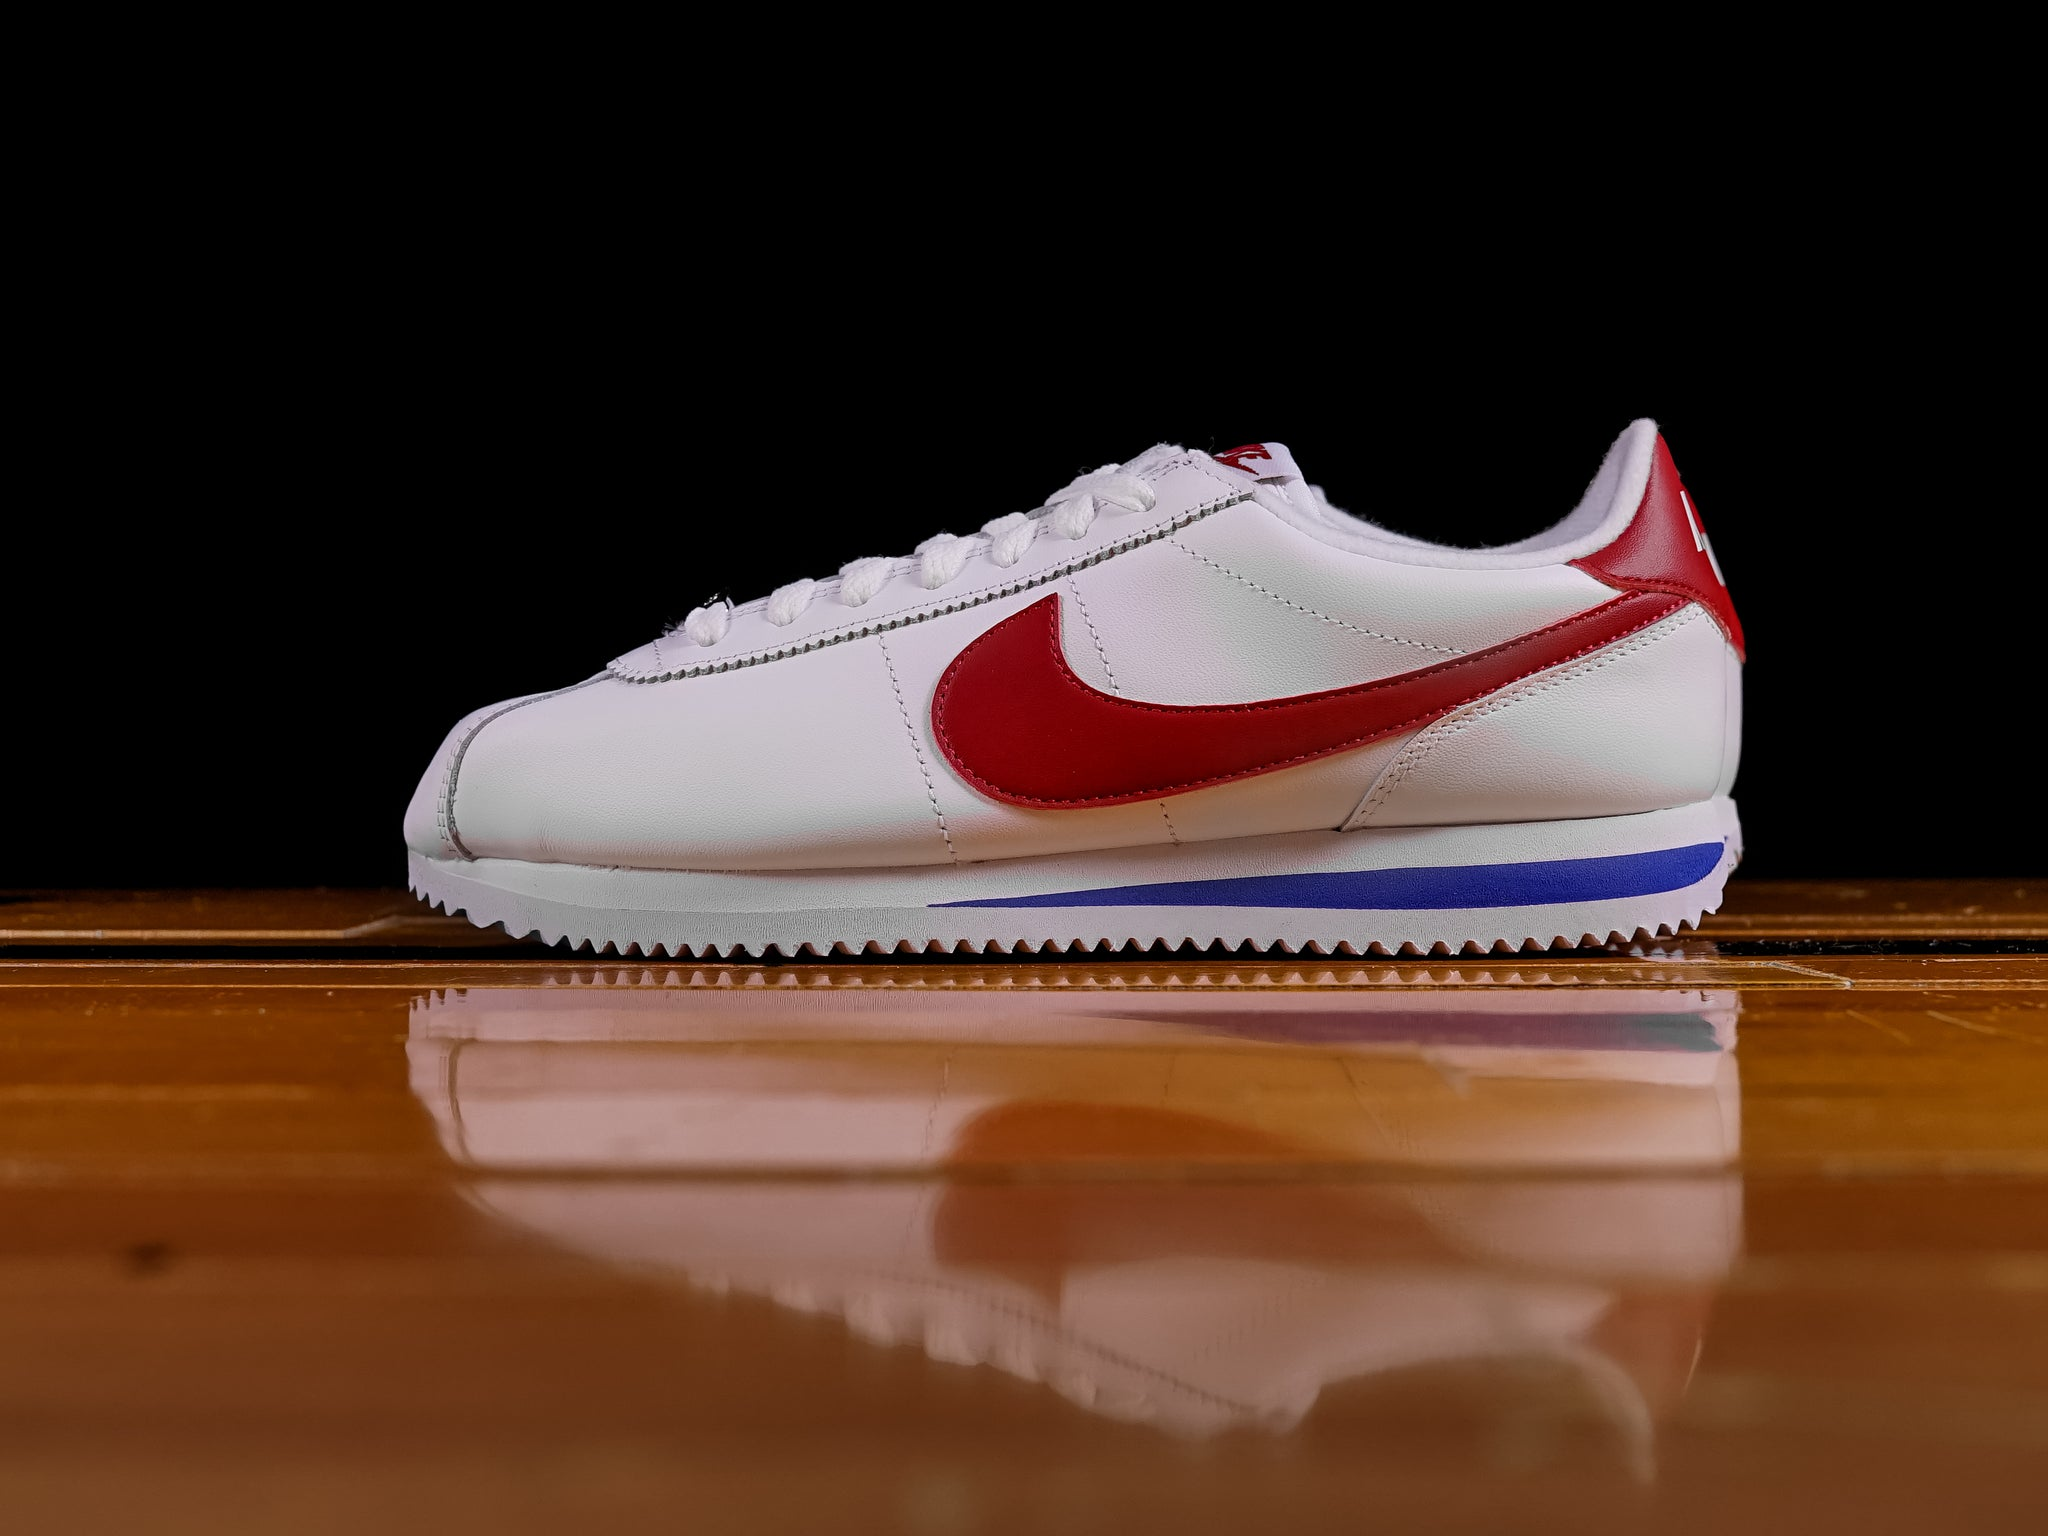 separation shoes d1a92 4c79e Men's Nike Cortez Leather OG 'Forrest Gump' [882254-164]